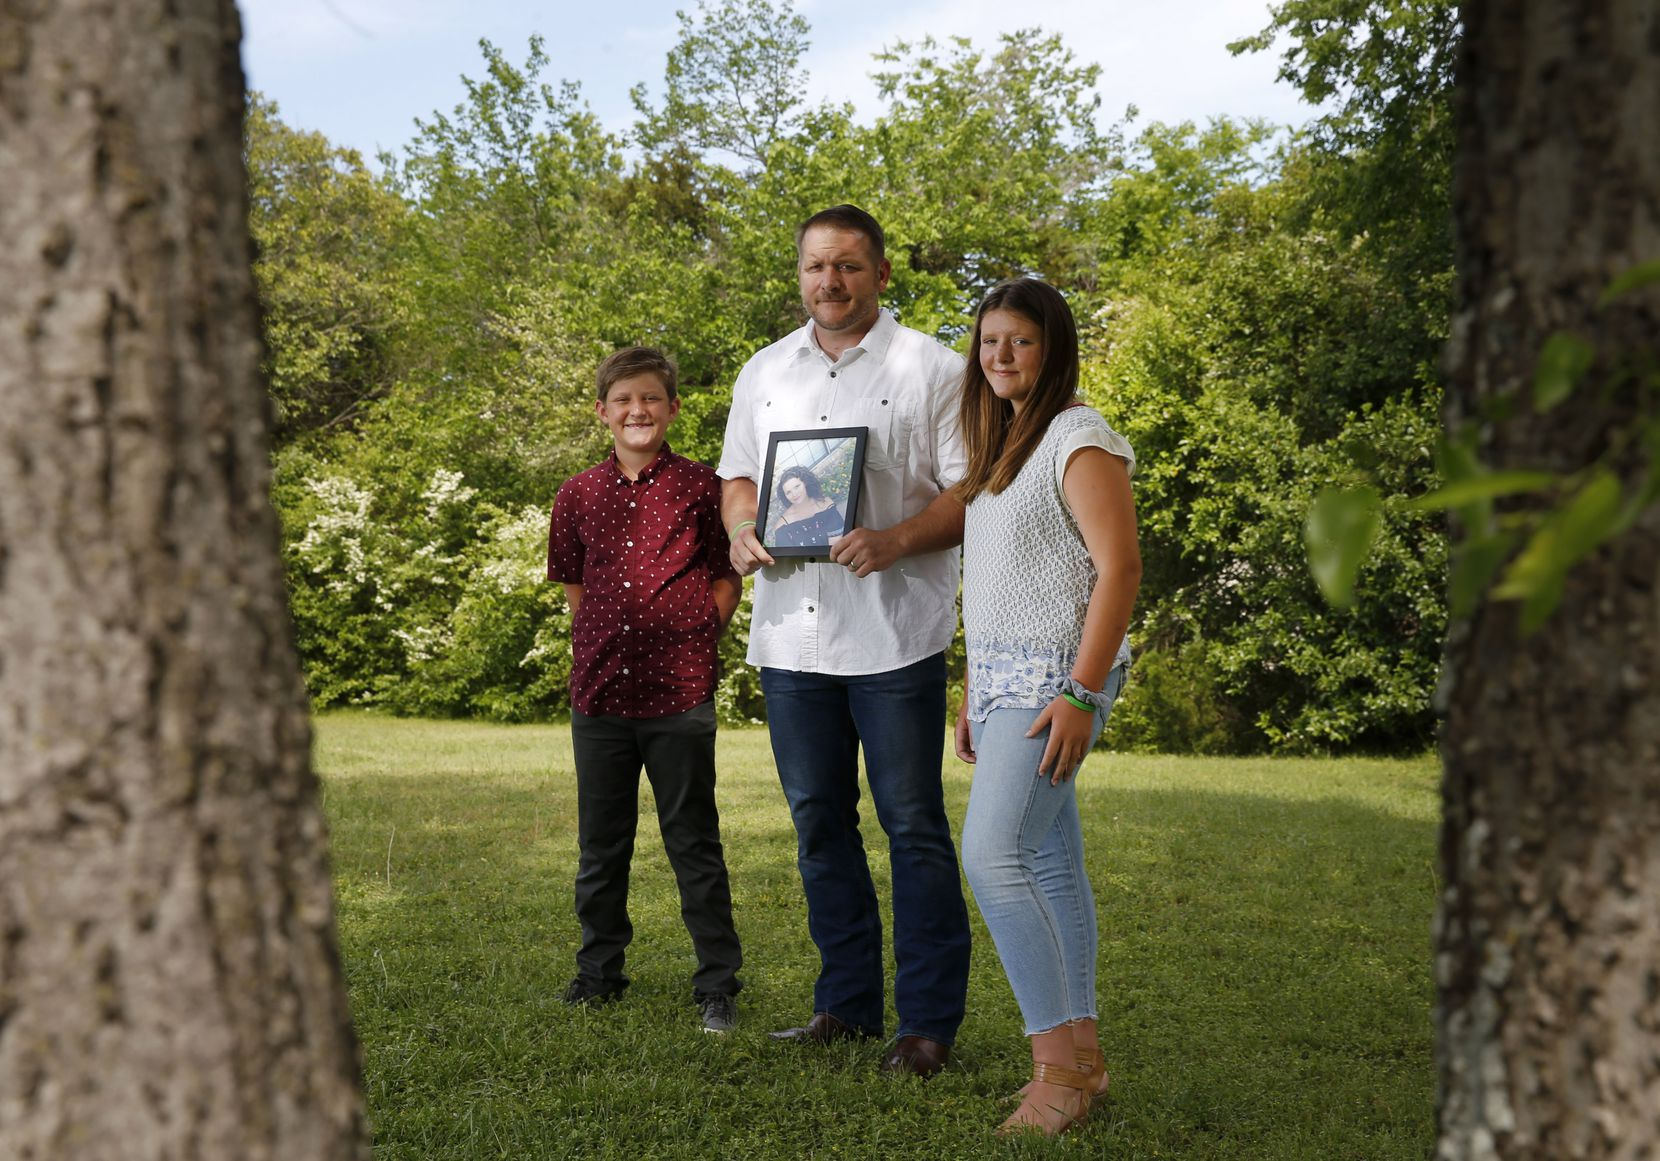 Brandon Palmer, 11, John Palmer and Bella Palmer, 13, posed for a portrait as John holds a photo of his wife, Katie Palmer, in the front yard of their home in Denison.